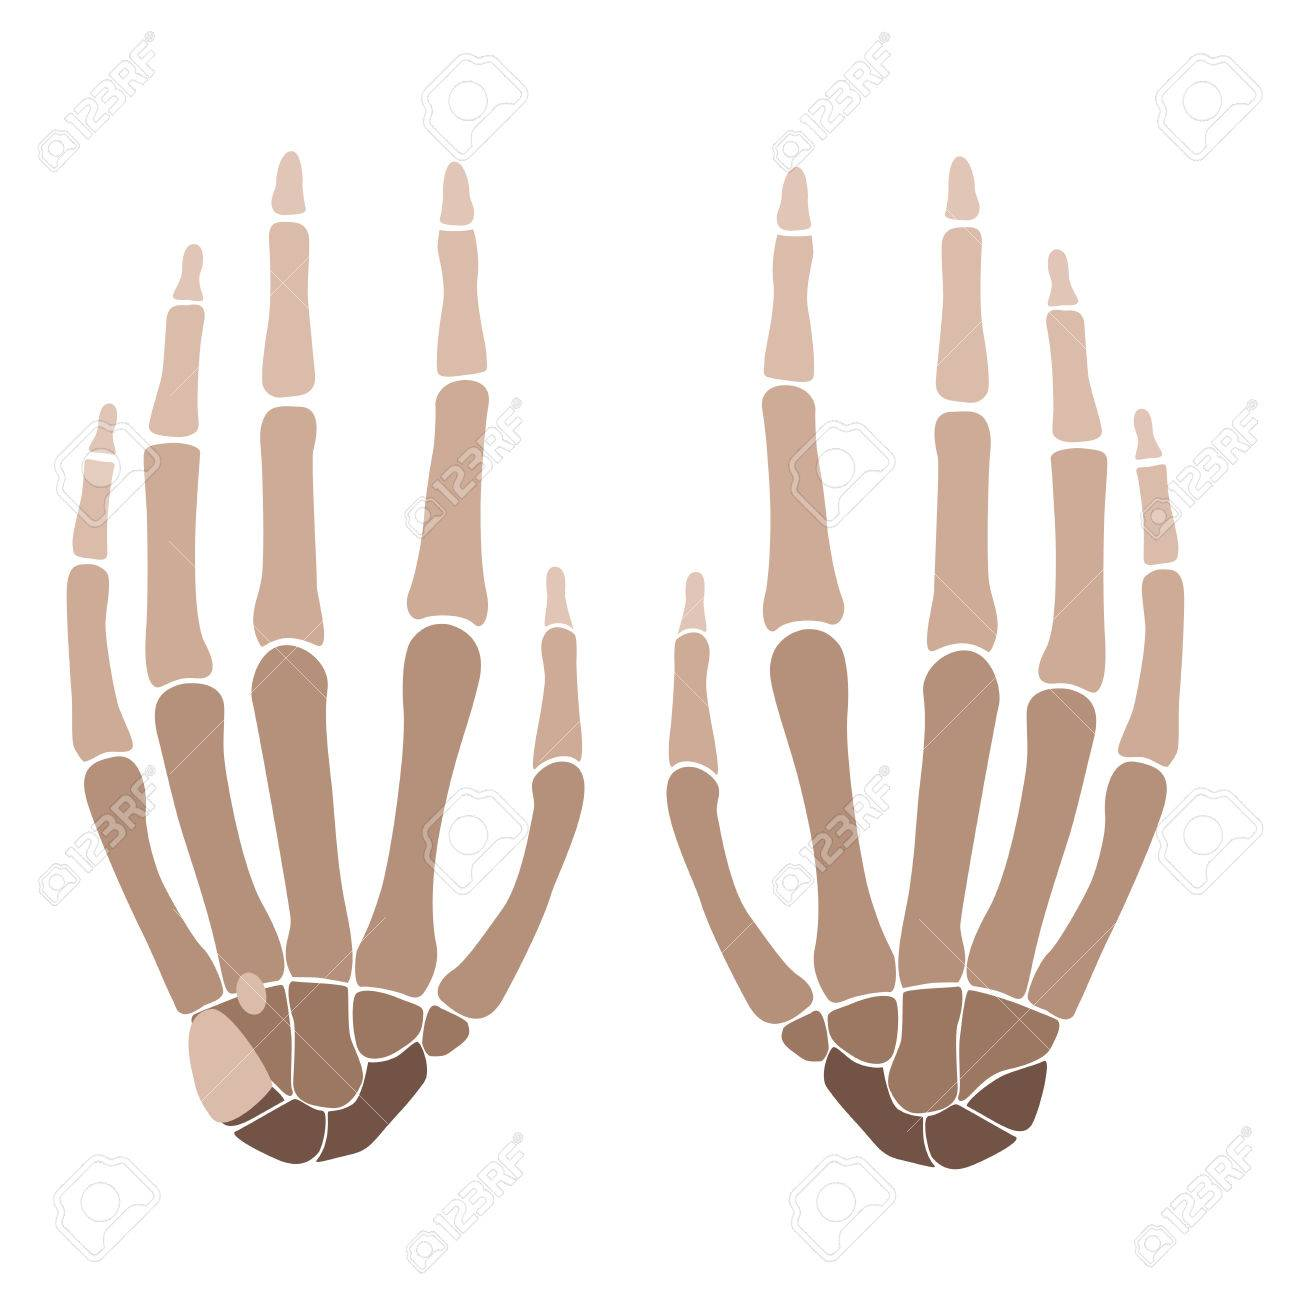 Vector Illustration Of A Human Hand Bones Anatomy Royalty Free